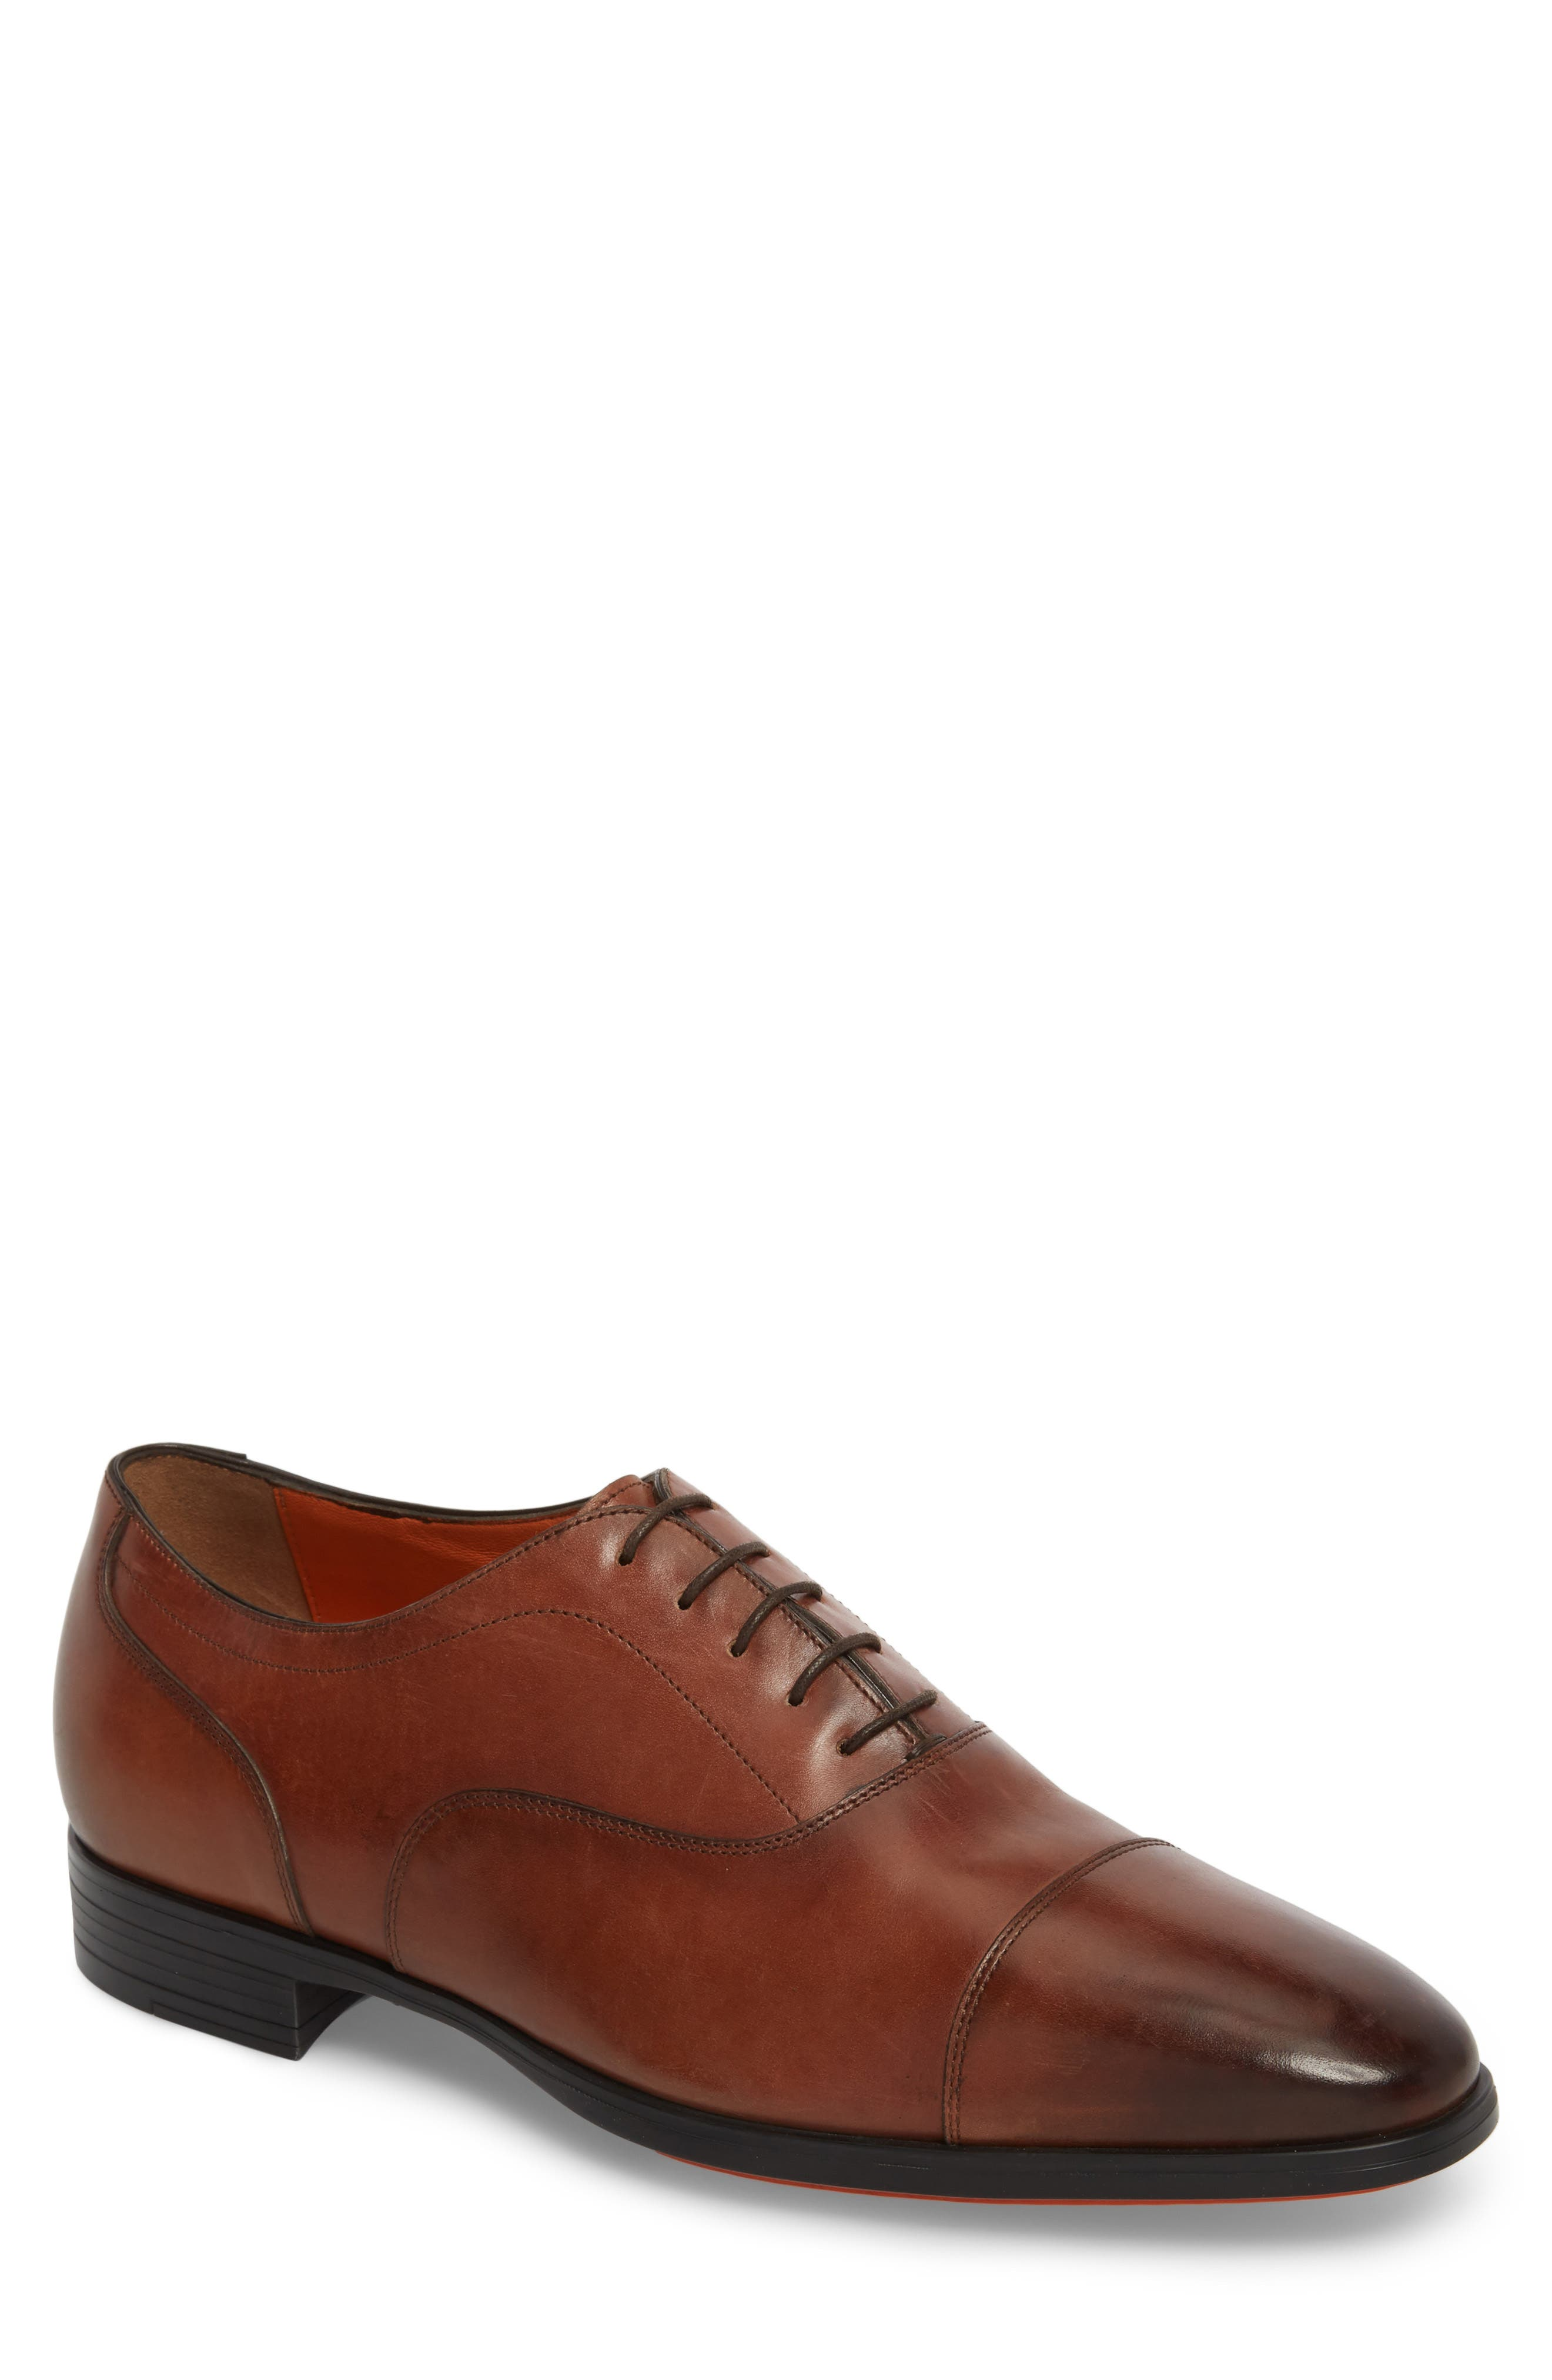 Eamon Cap Toe Oxford,                             Main thumbnail 1, color,                             BROWN